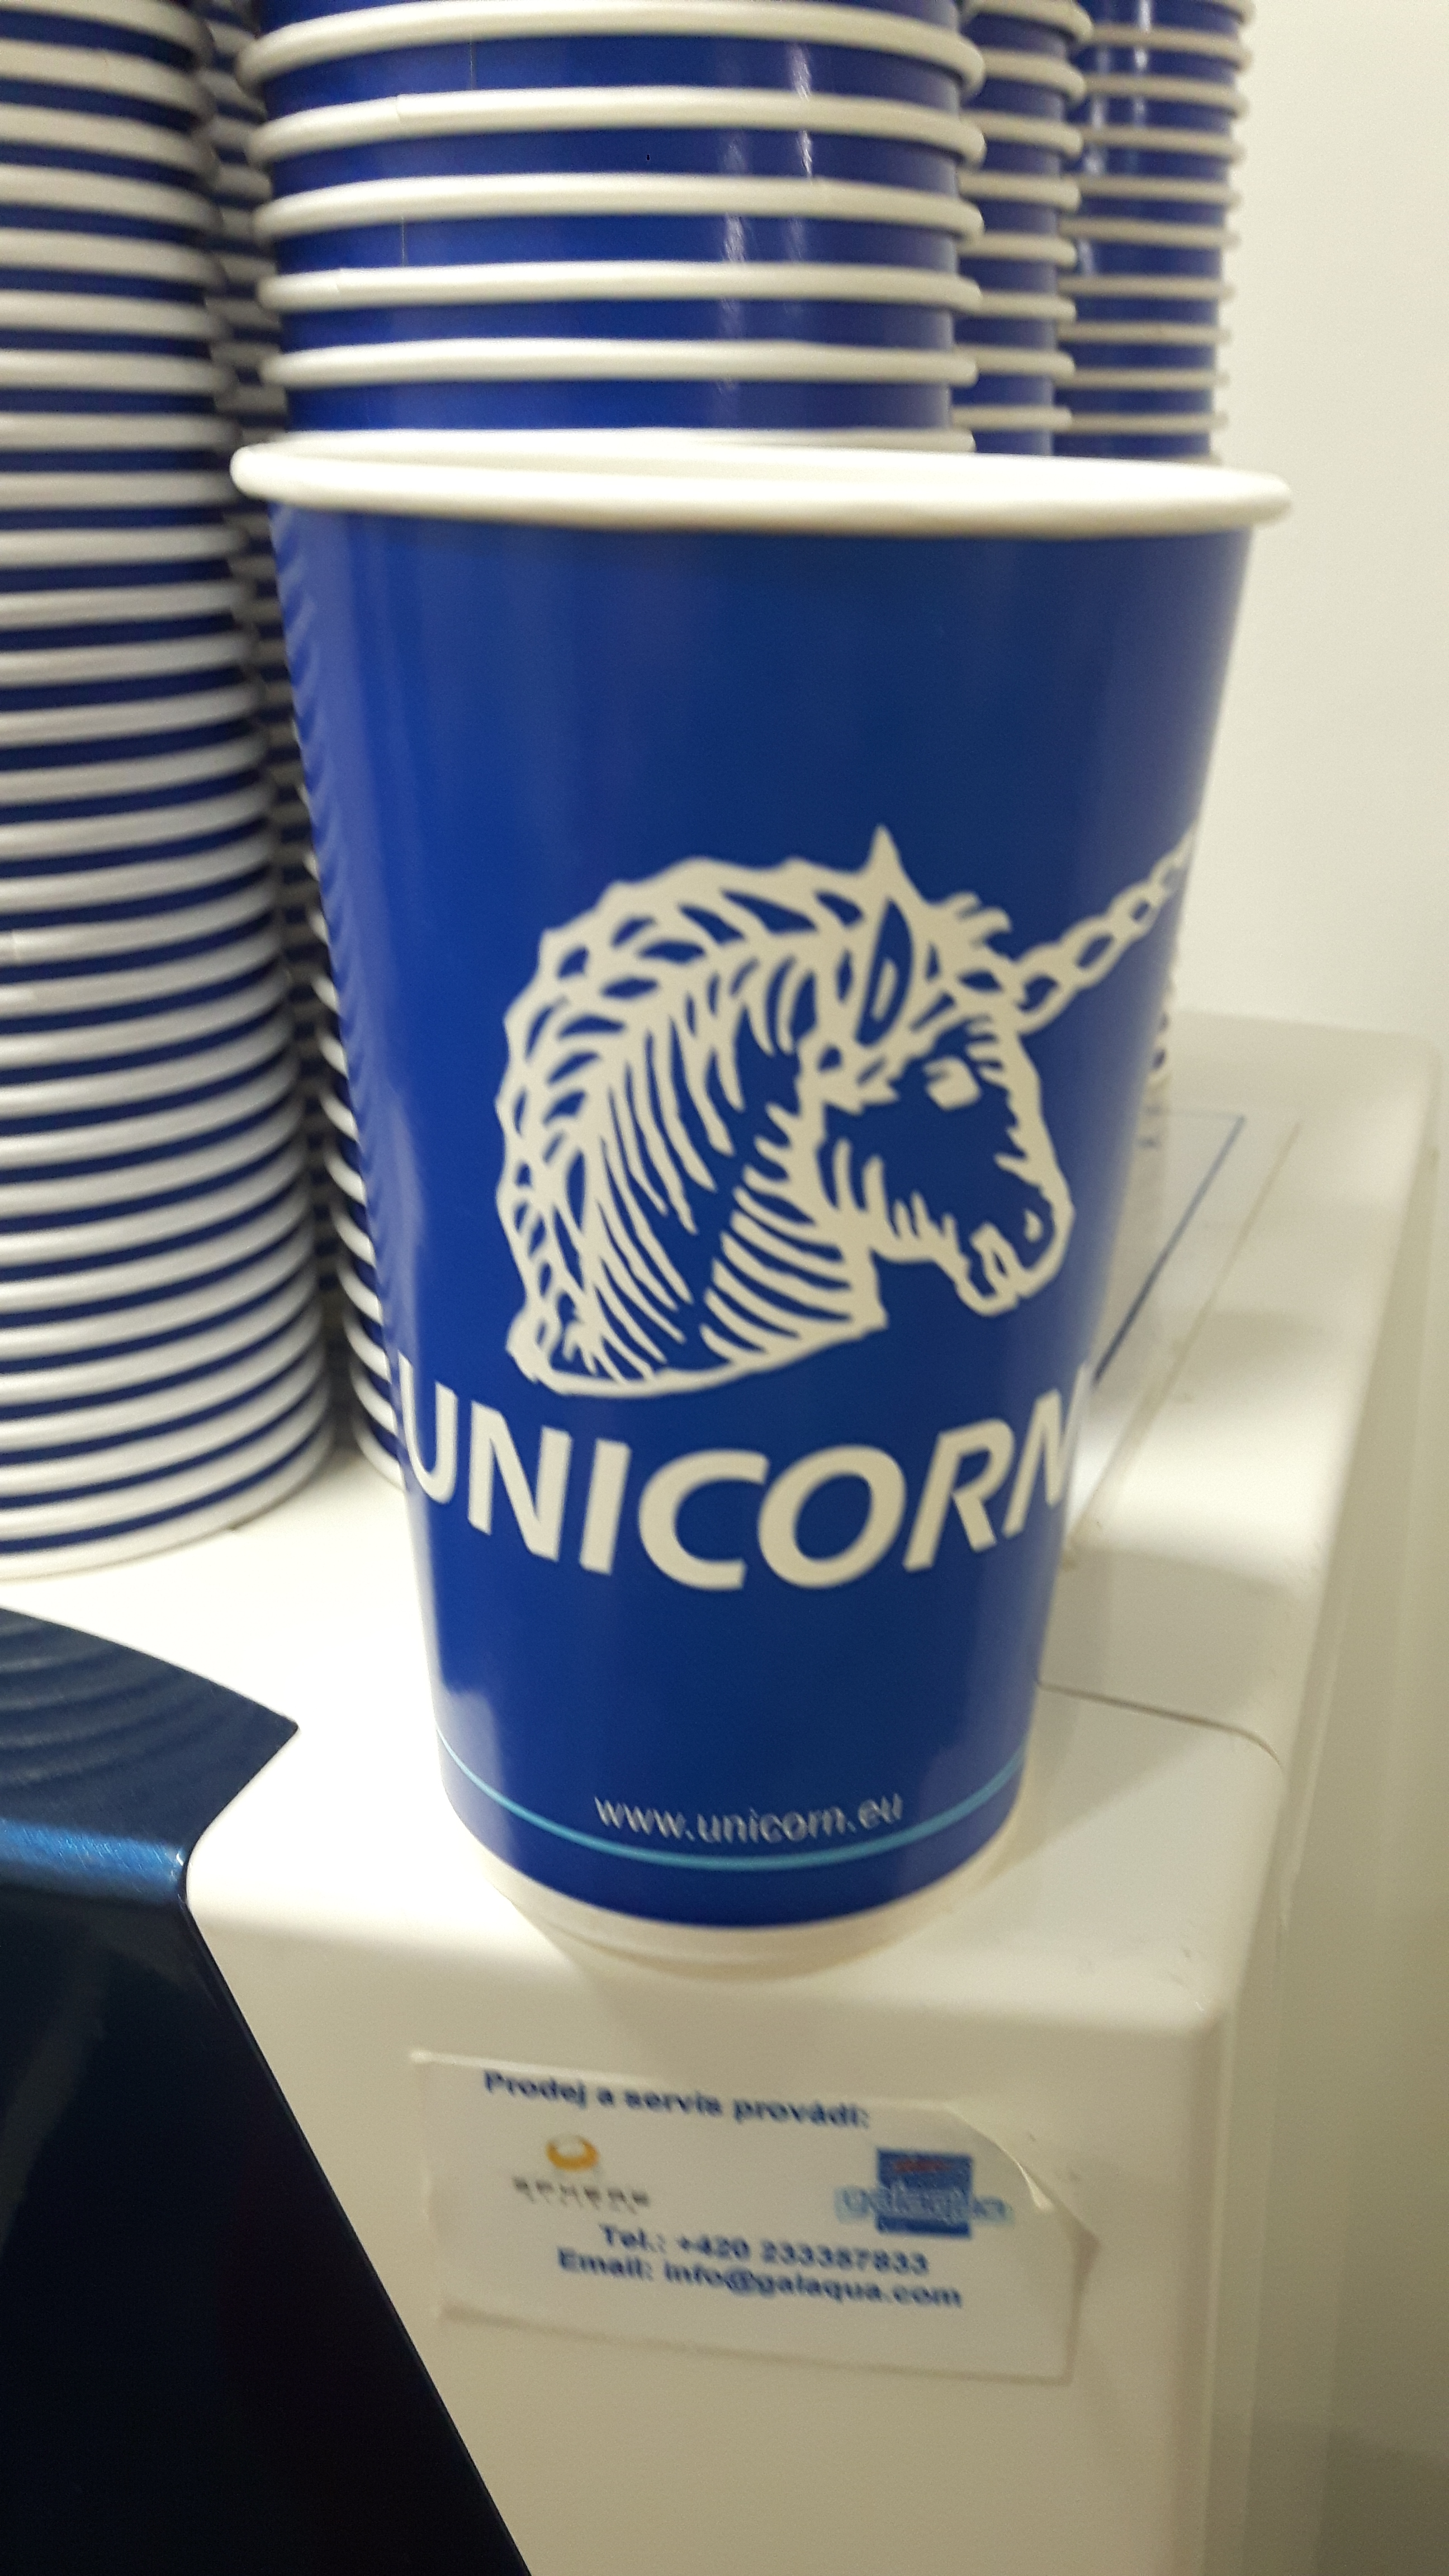 [Translate to Englisch:] Becher des Unicorn College Prag